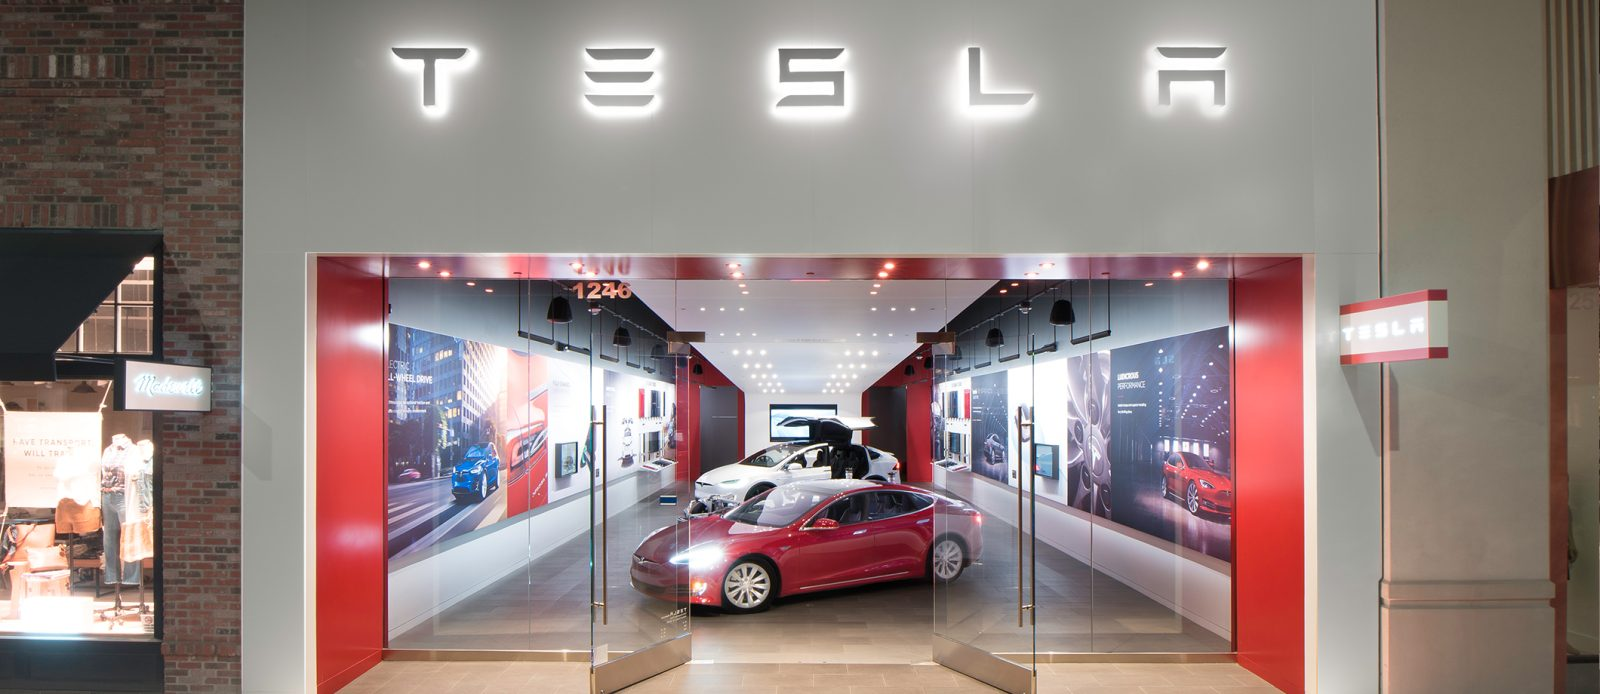 Tesla is making strides in Wisconsin due to Republican Senator being a fan who repairs salvaged Tesla cars